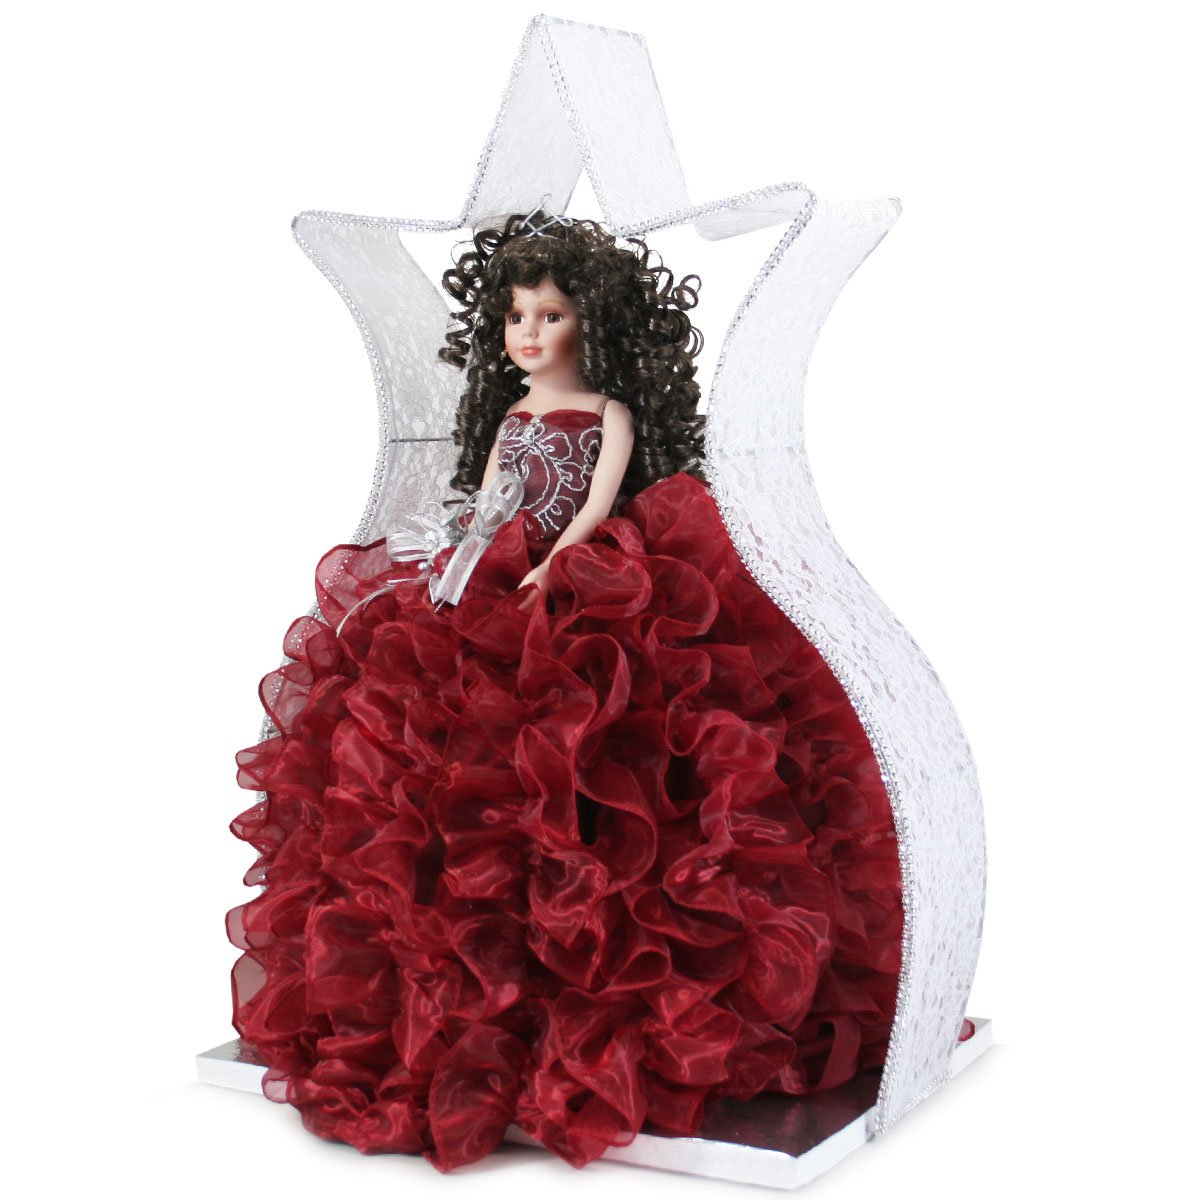 Quinceanera Ruffle Doll Girls Birthday Party Favor Q2063 (Add arch to doll)